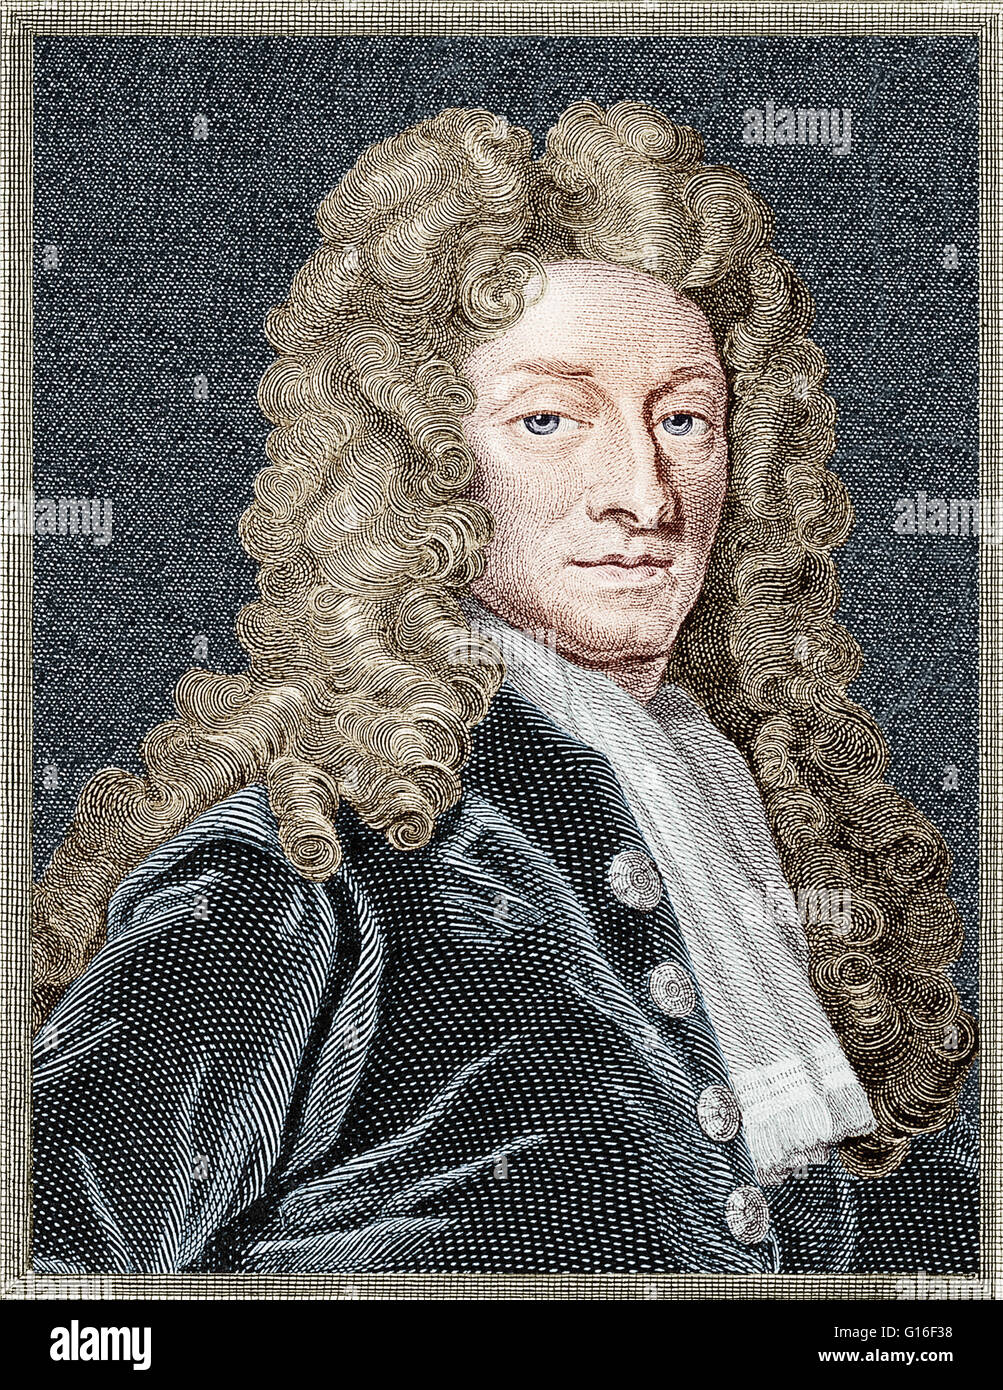 Line engraving of Sir Christopher Wren by T. Holloway, 1798, after Godfrey Kneller, 1711. Sir Christopher Wren (1632 - Stock Image